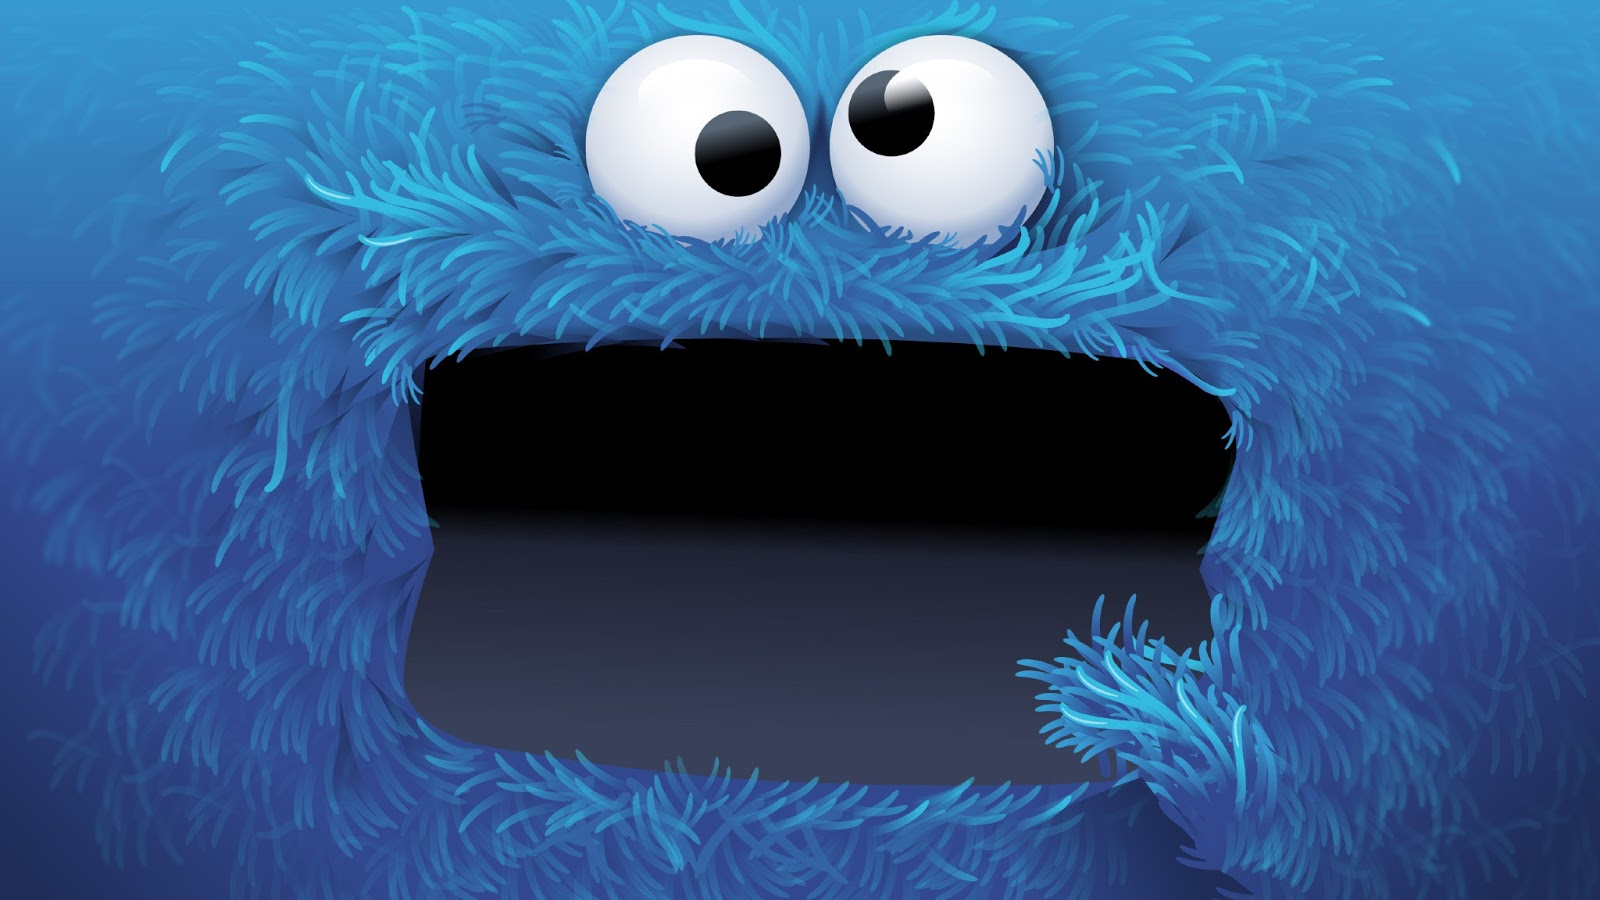 Cookie Monster Wallpapers 596.23 Kb